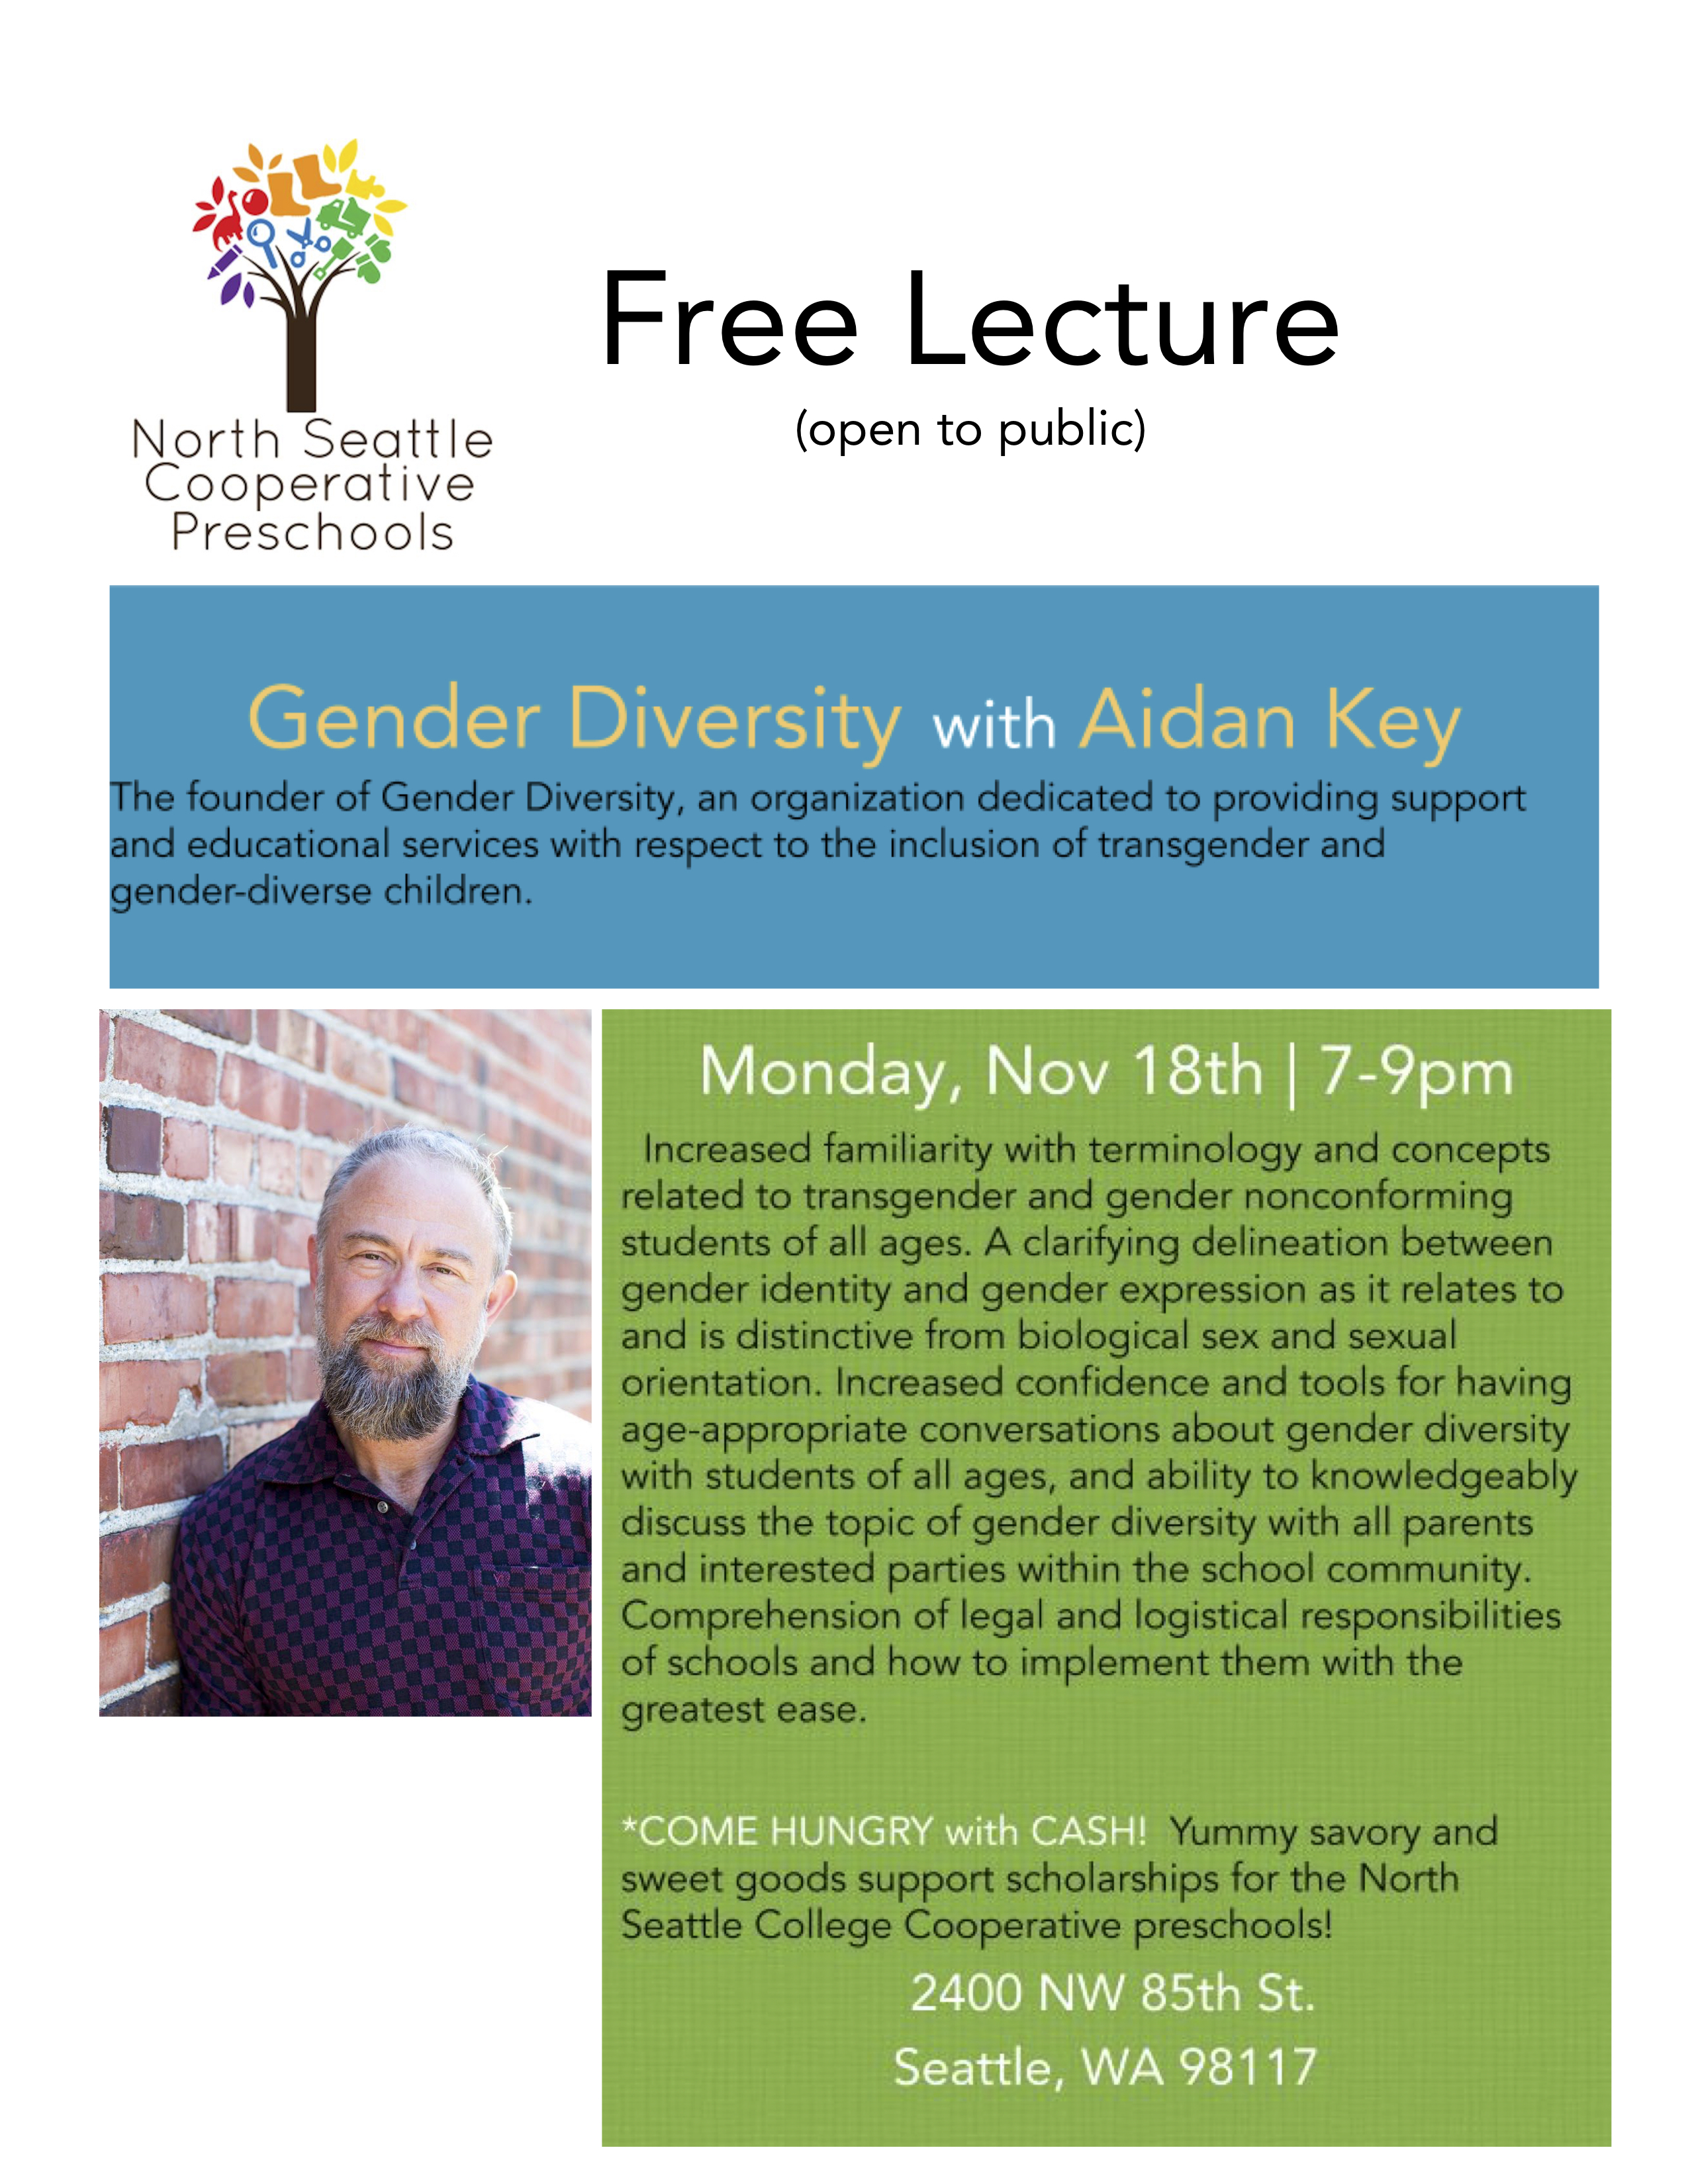 Free Fall Lecture Monday, Nov. 18